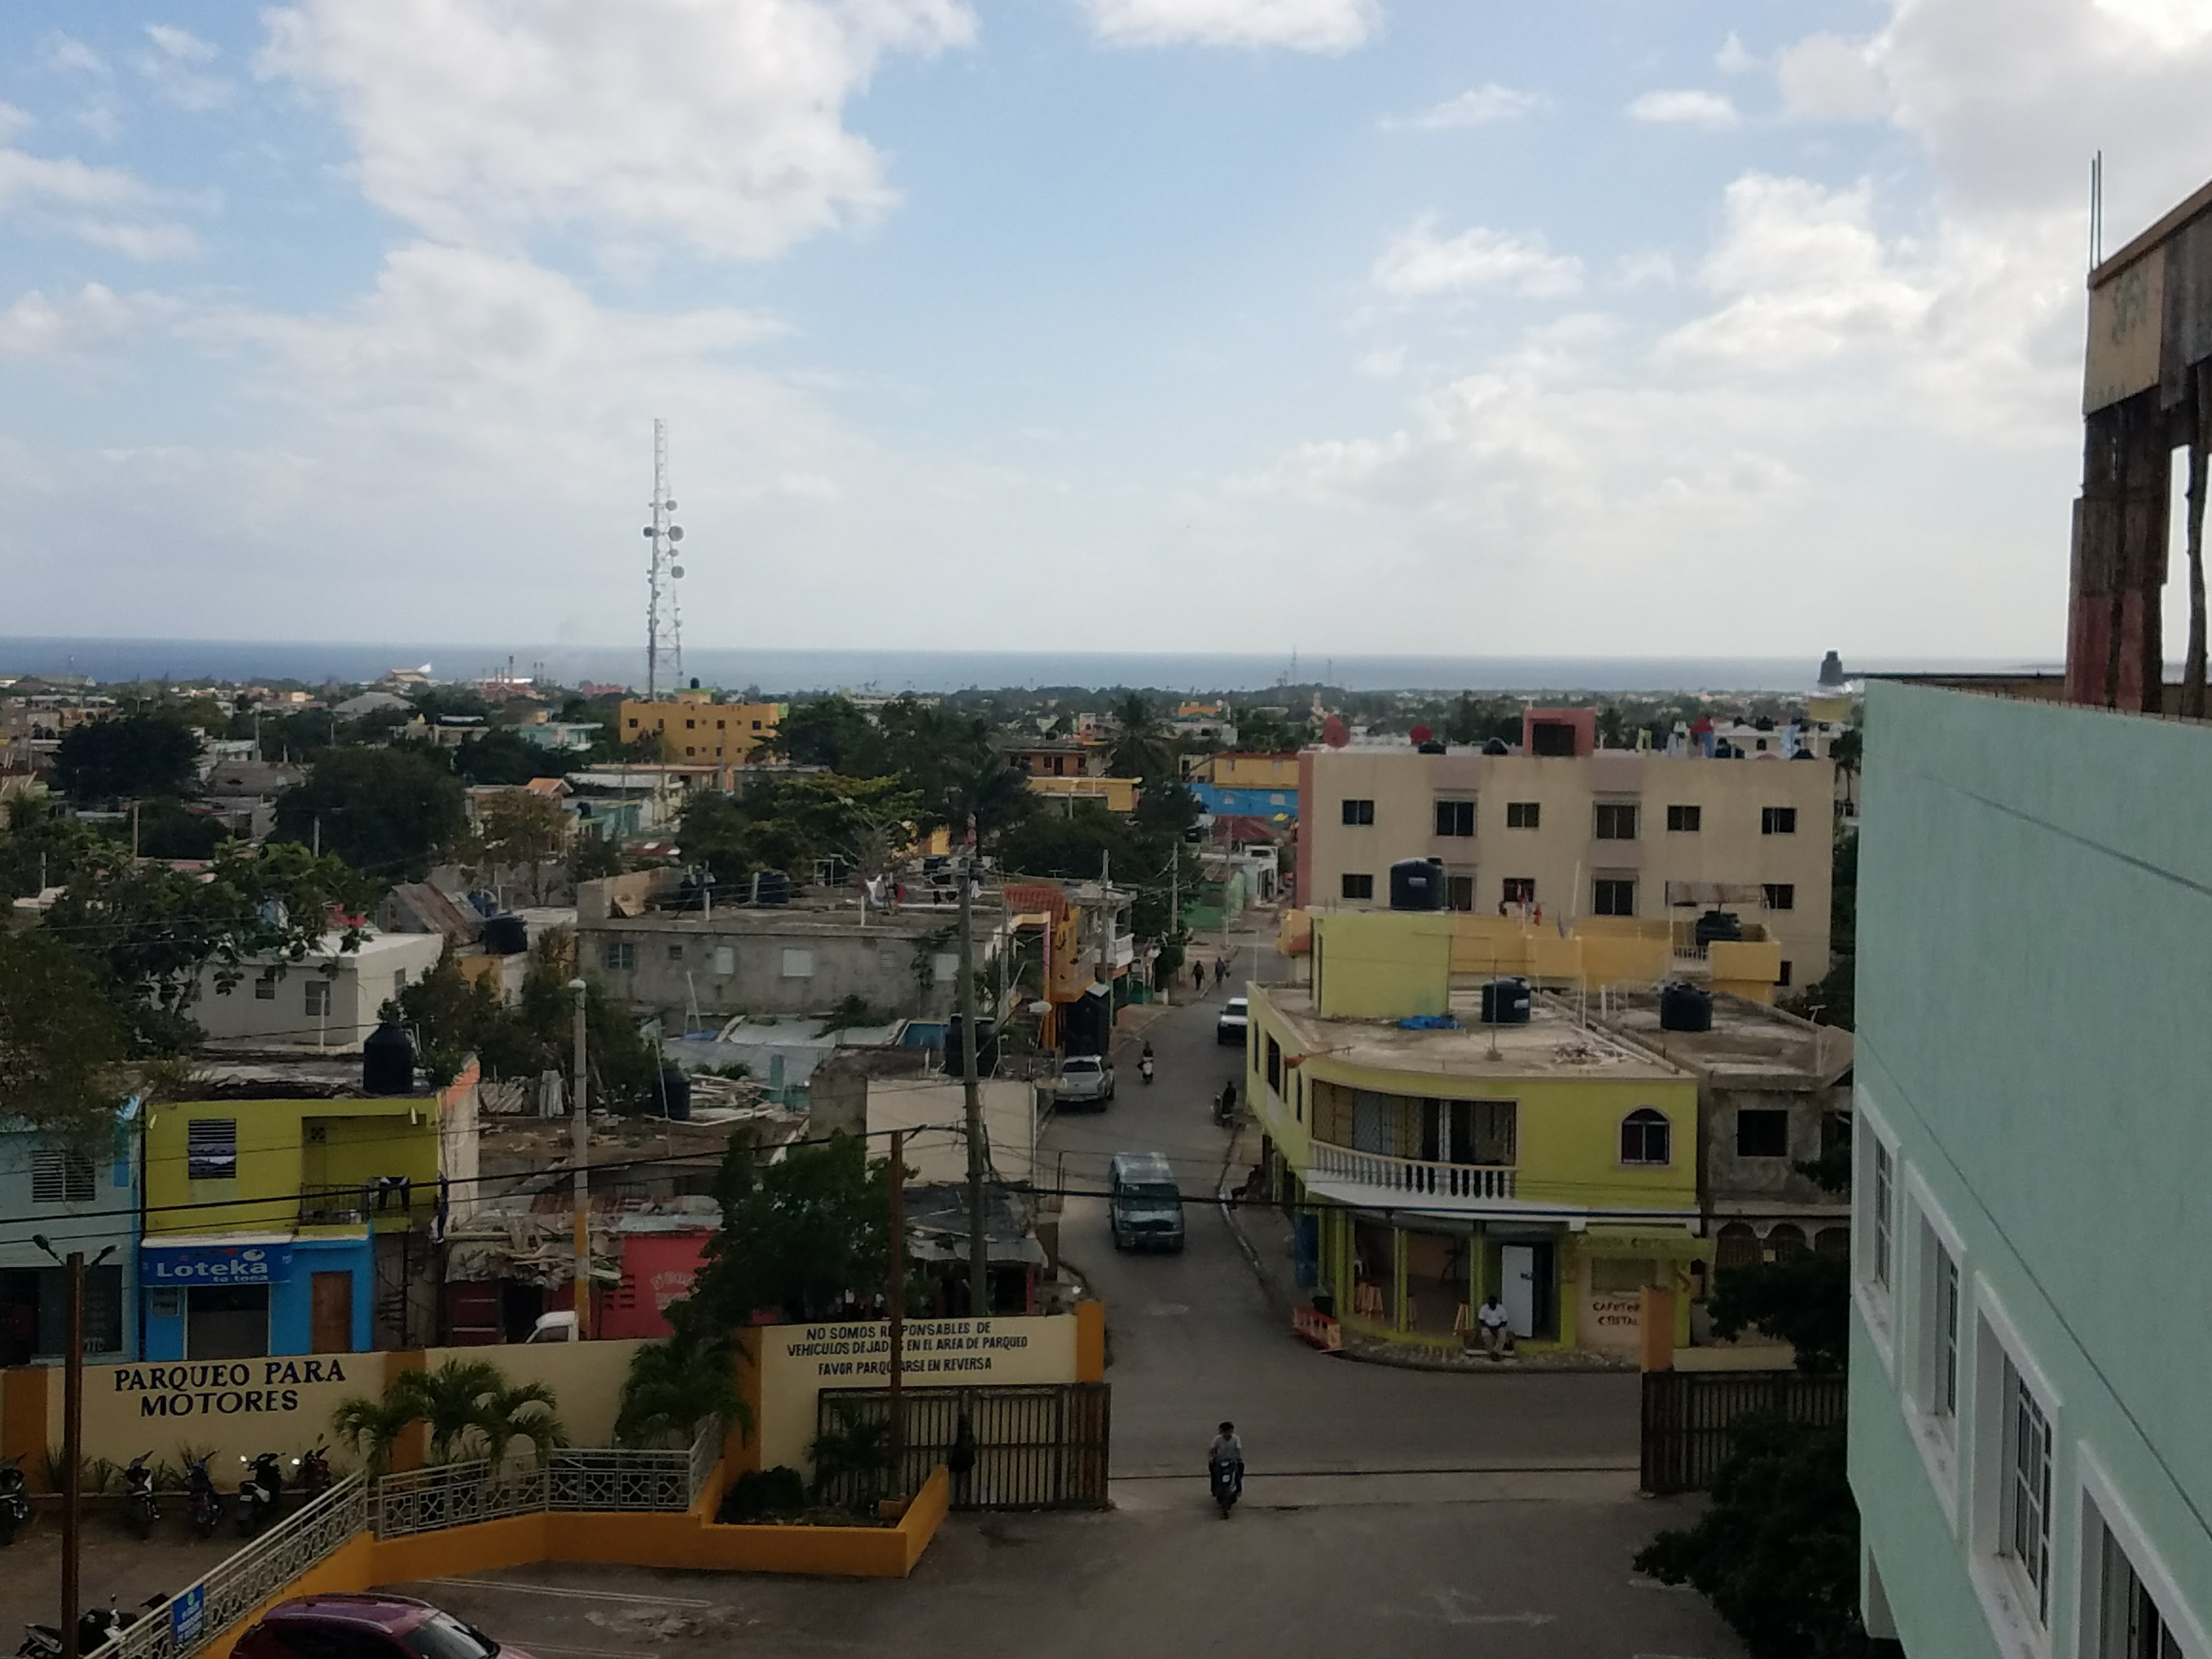 Friday Seekers – A Mission Update from LaRomana